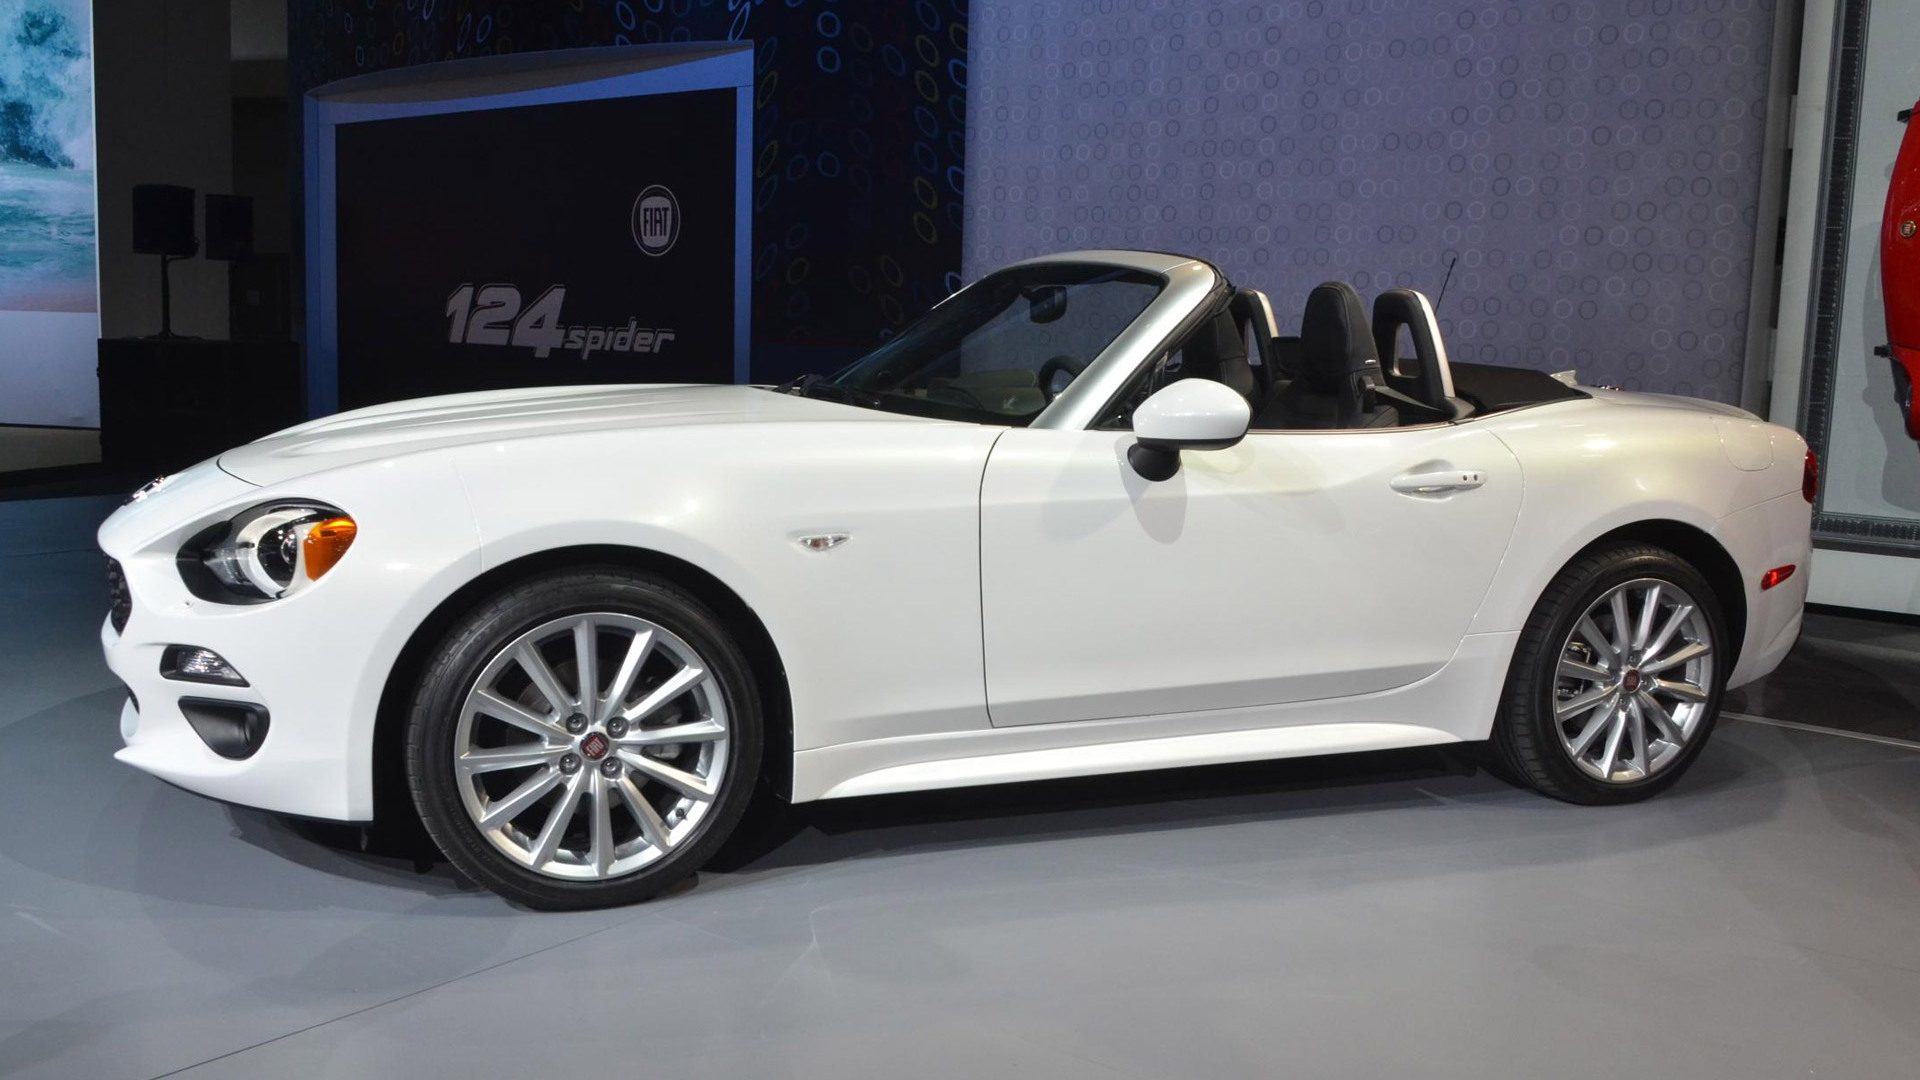 2017 Fiat 124 Spider, 2015 Los Angeles Auto Show